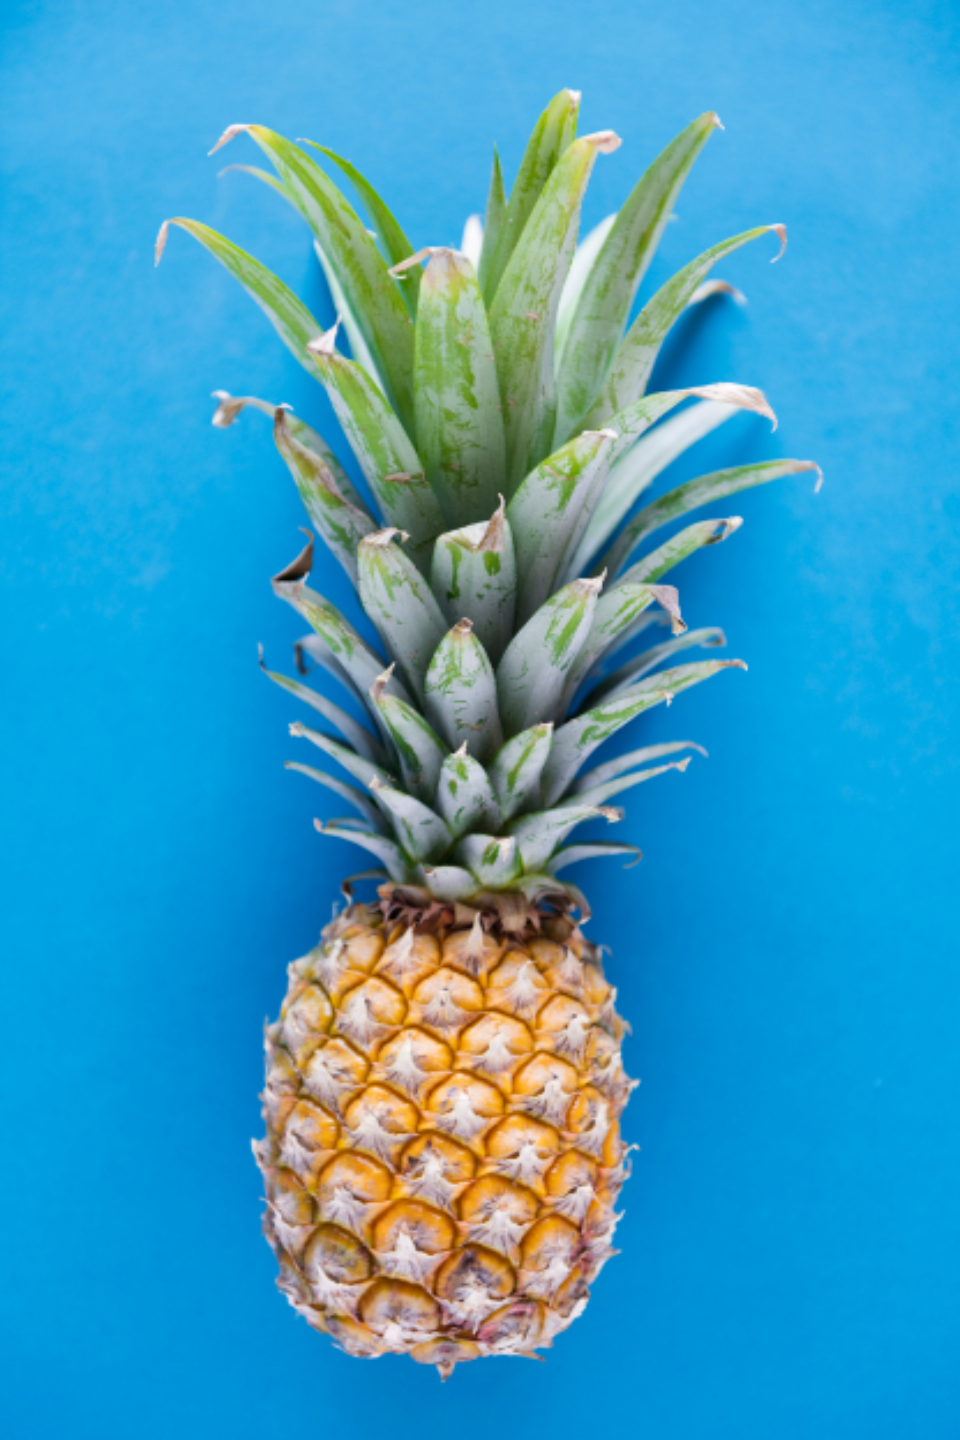 blue background delicious dessert diet energy flat lay flatlay food fresh freshness fruit healthy ingredient isolated juicy natural nature nutrition nutritious organic pattern pineapple raw refreshment ripe season season